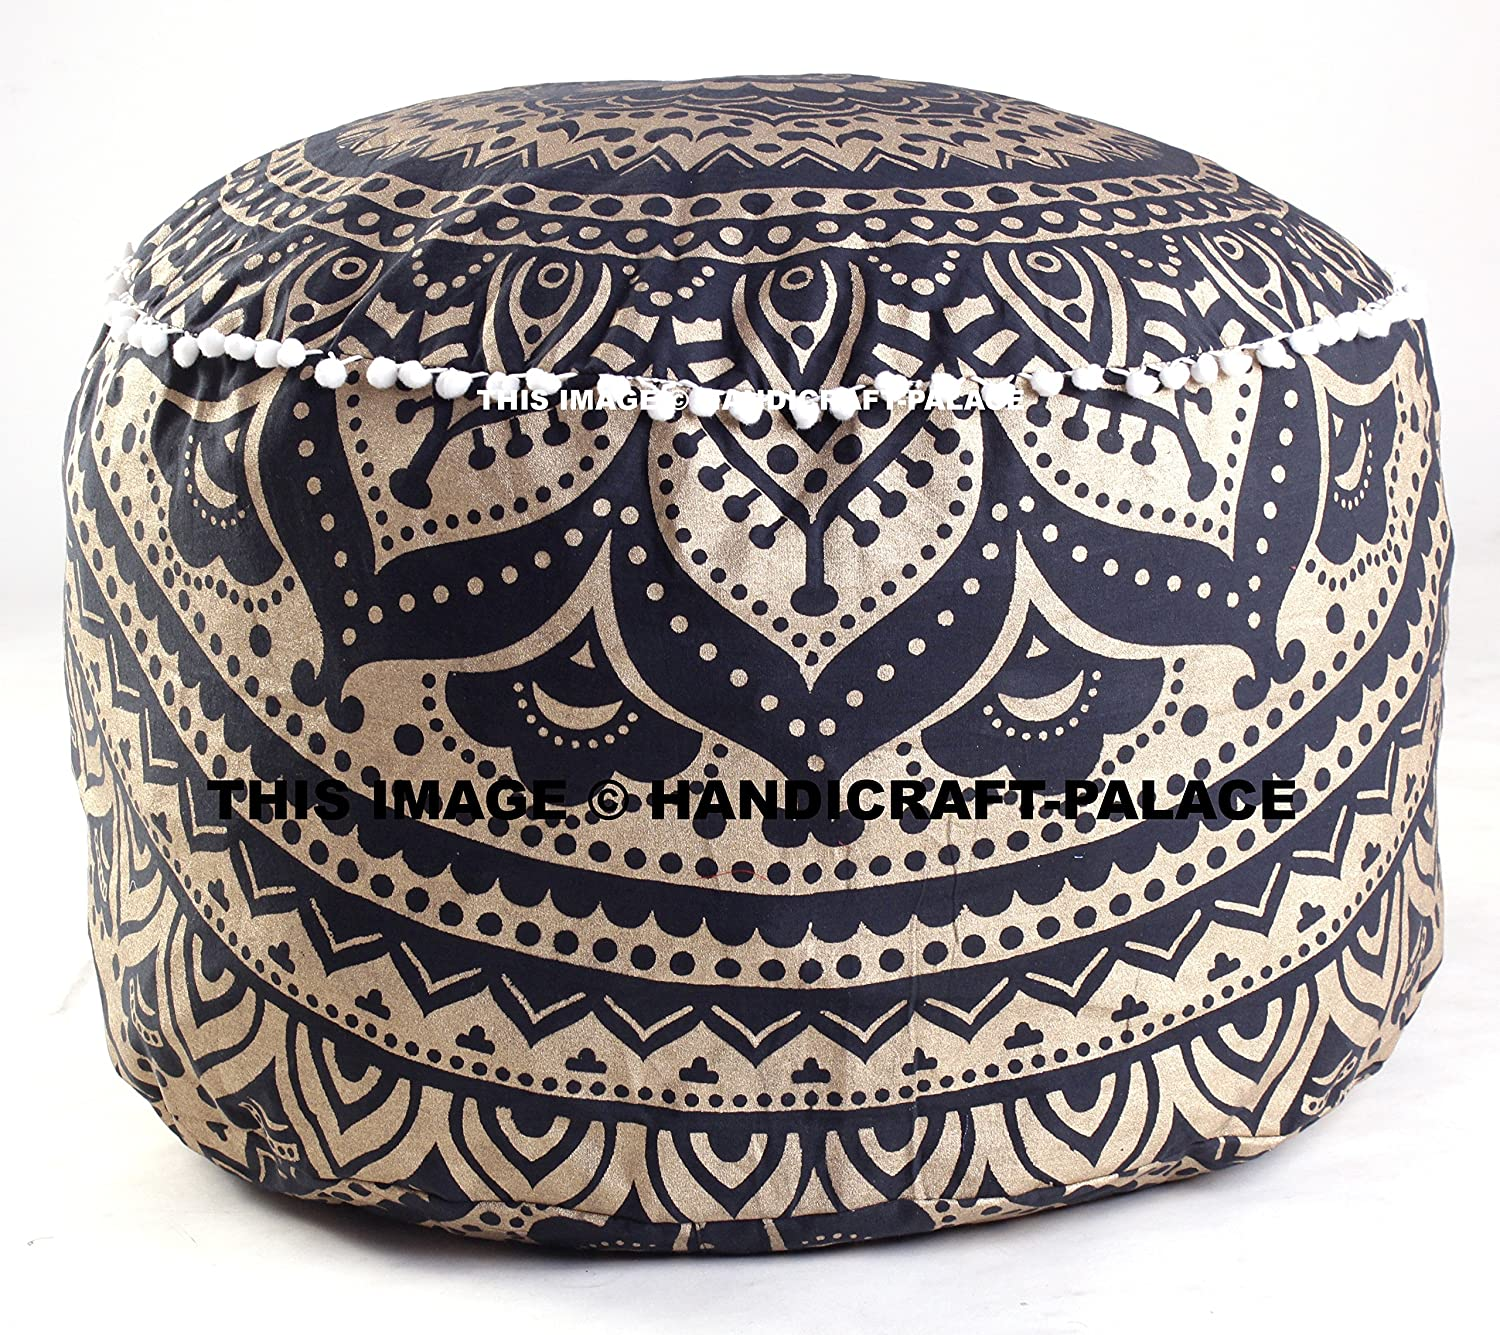 Indian Black Gold Ombre Mandala Footstool Round Pouf Cover Ottoman Cover Pouffe Decorative Pouf Ottoman,Indian Comfortable Floor Pillow Cotton Cushion Cover Pouf,14x24'' by Handicraft-Palace MOS-13